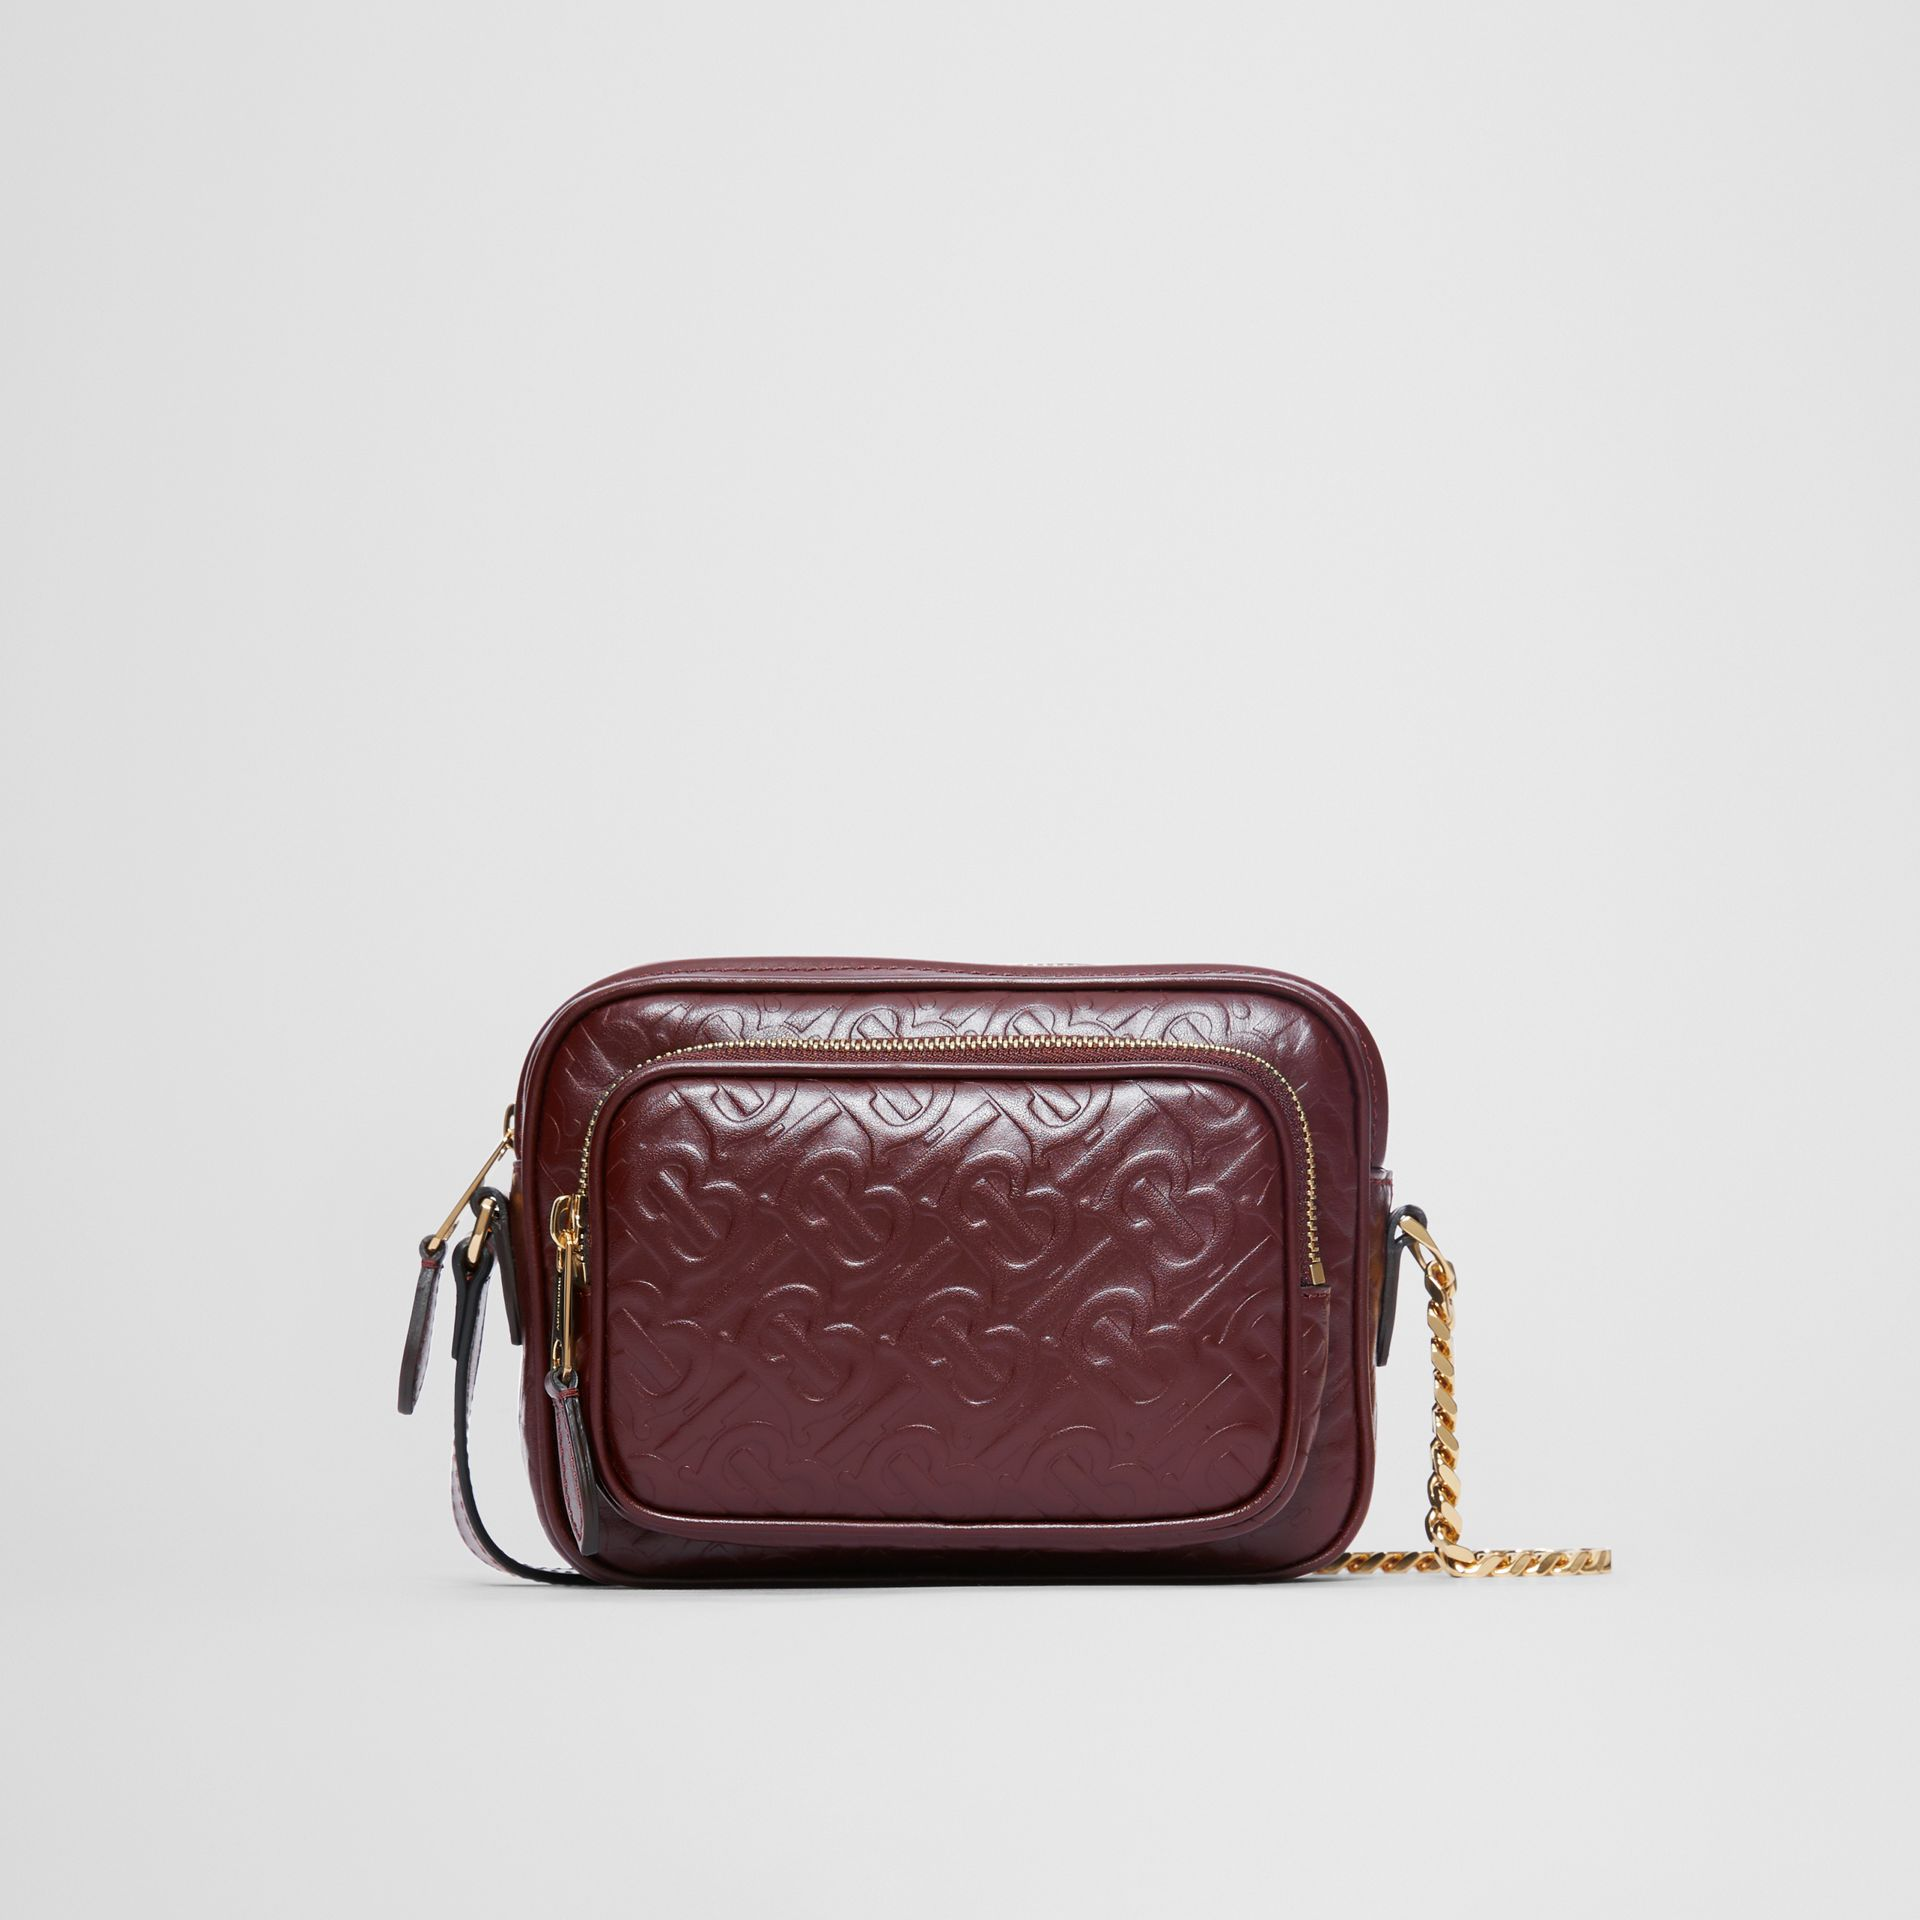 Monogram Leather Camera Bag in Dark Burgundy - Women | Burberry United States - gallery image 0